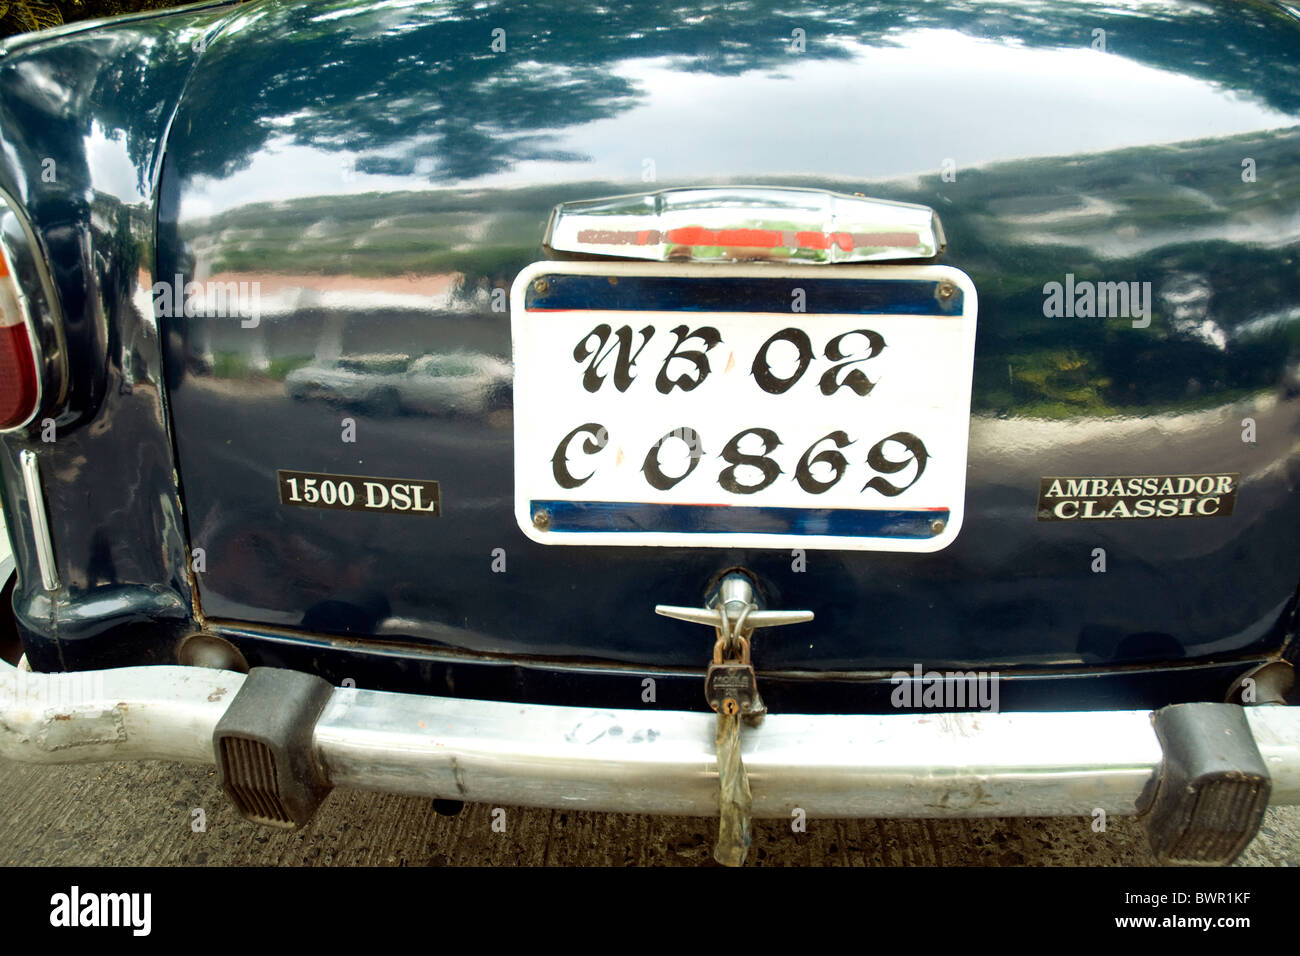 In Kolkata, India, the West Bengal (WB) number plate of the popular Ambassador Classic car--made in India since - Stock Image